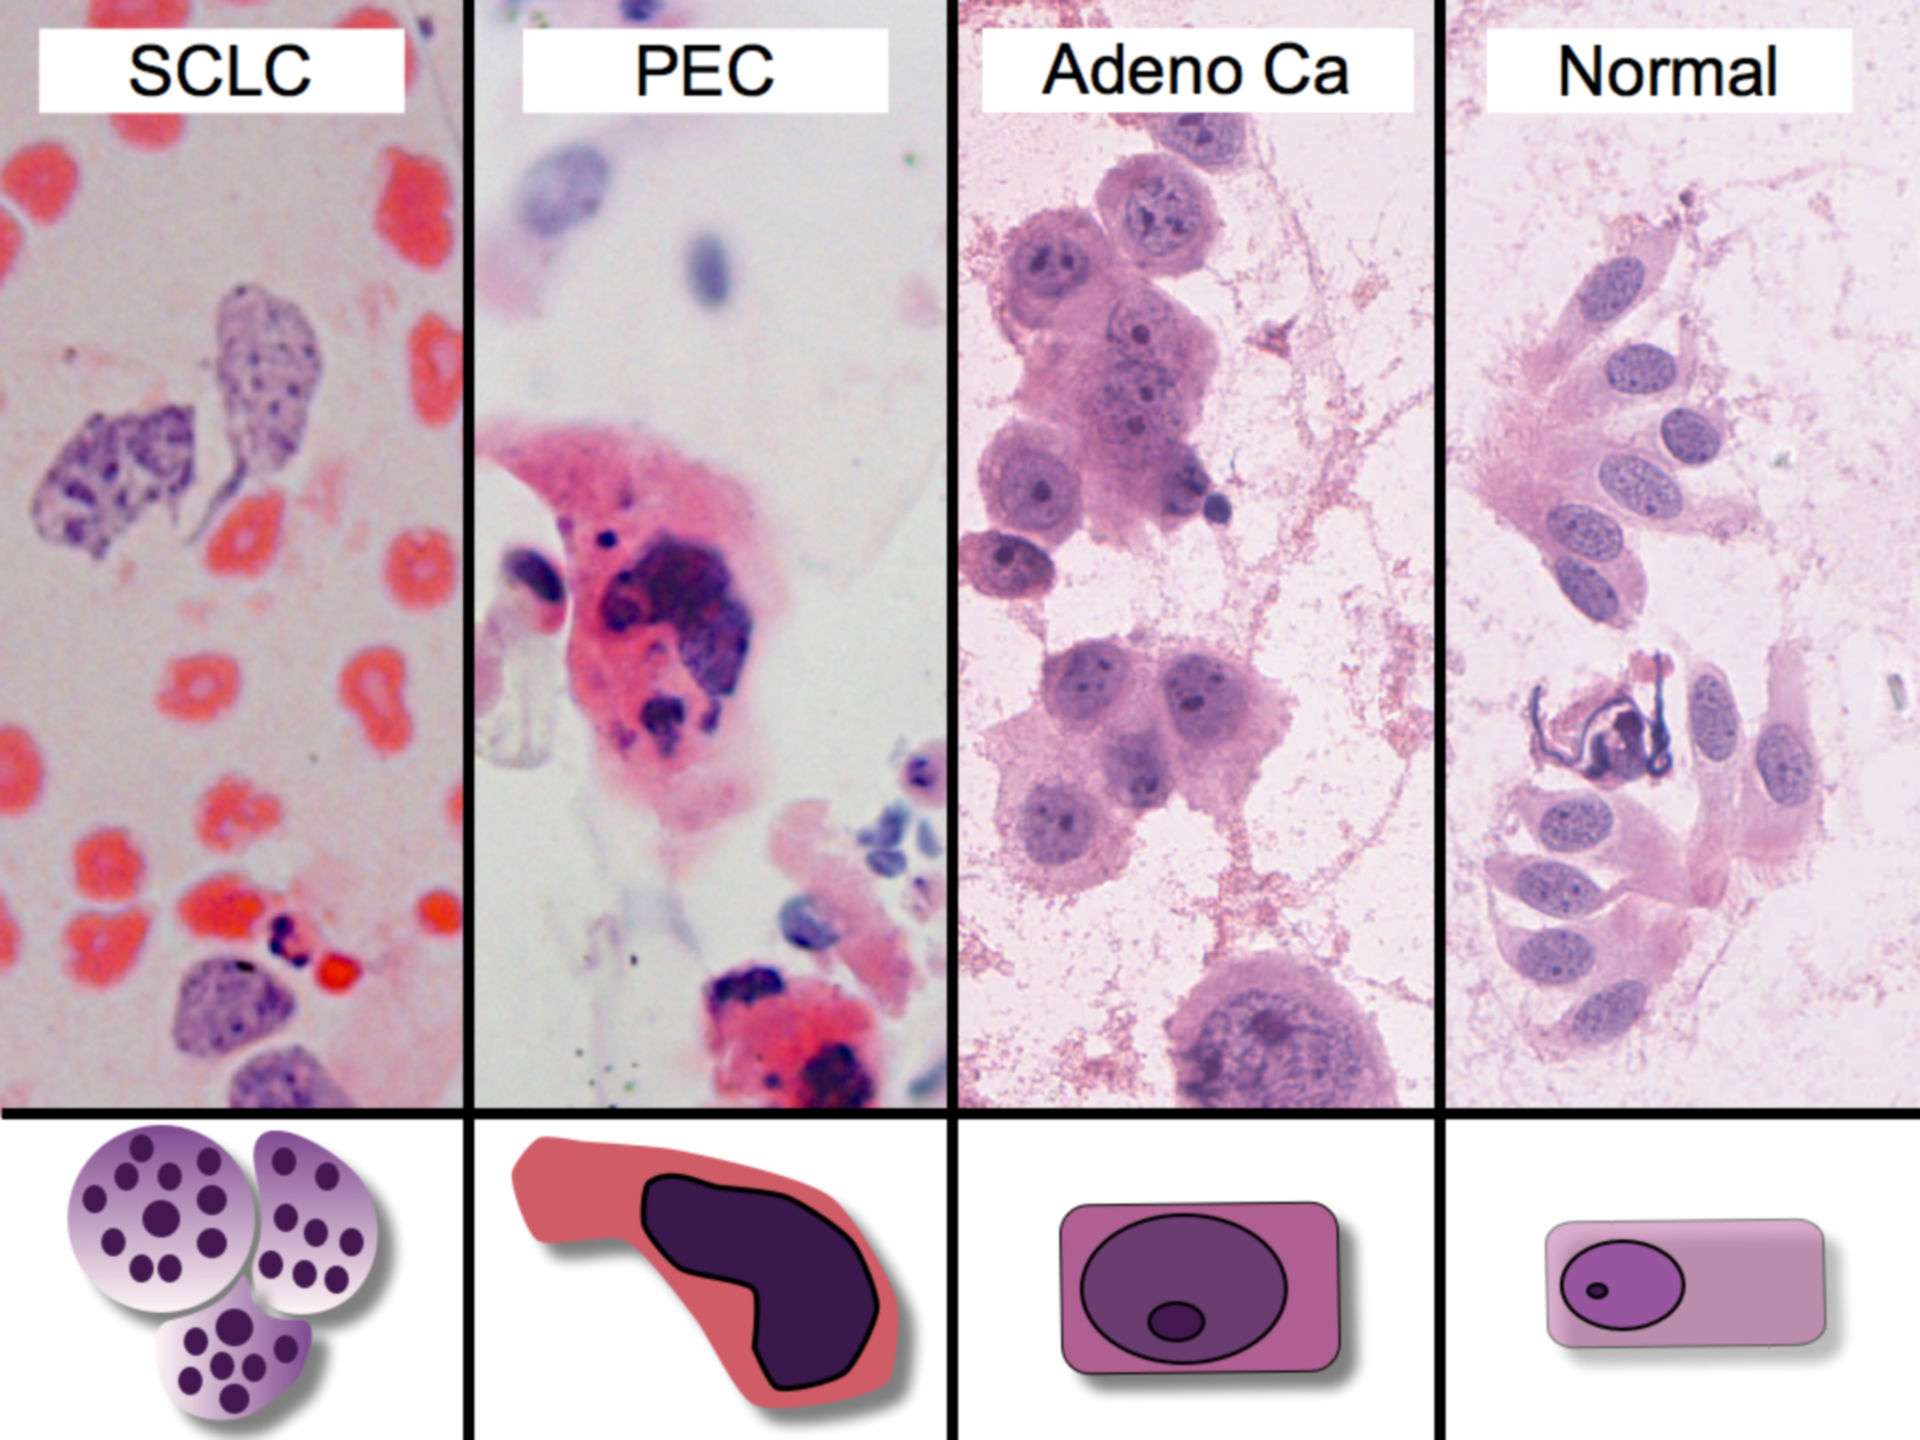 Cytology of the most common tumors of the lung